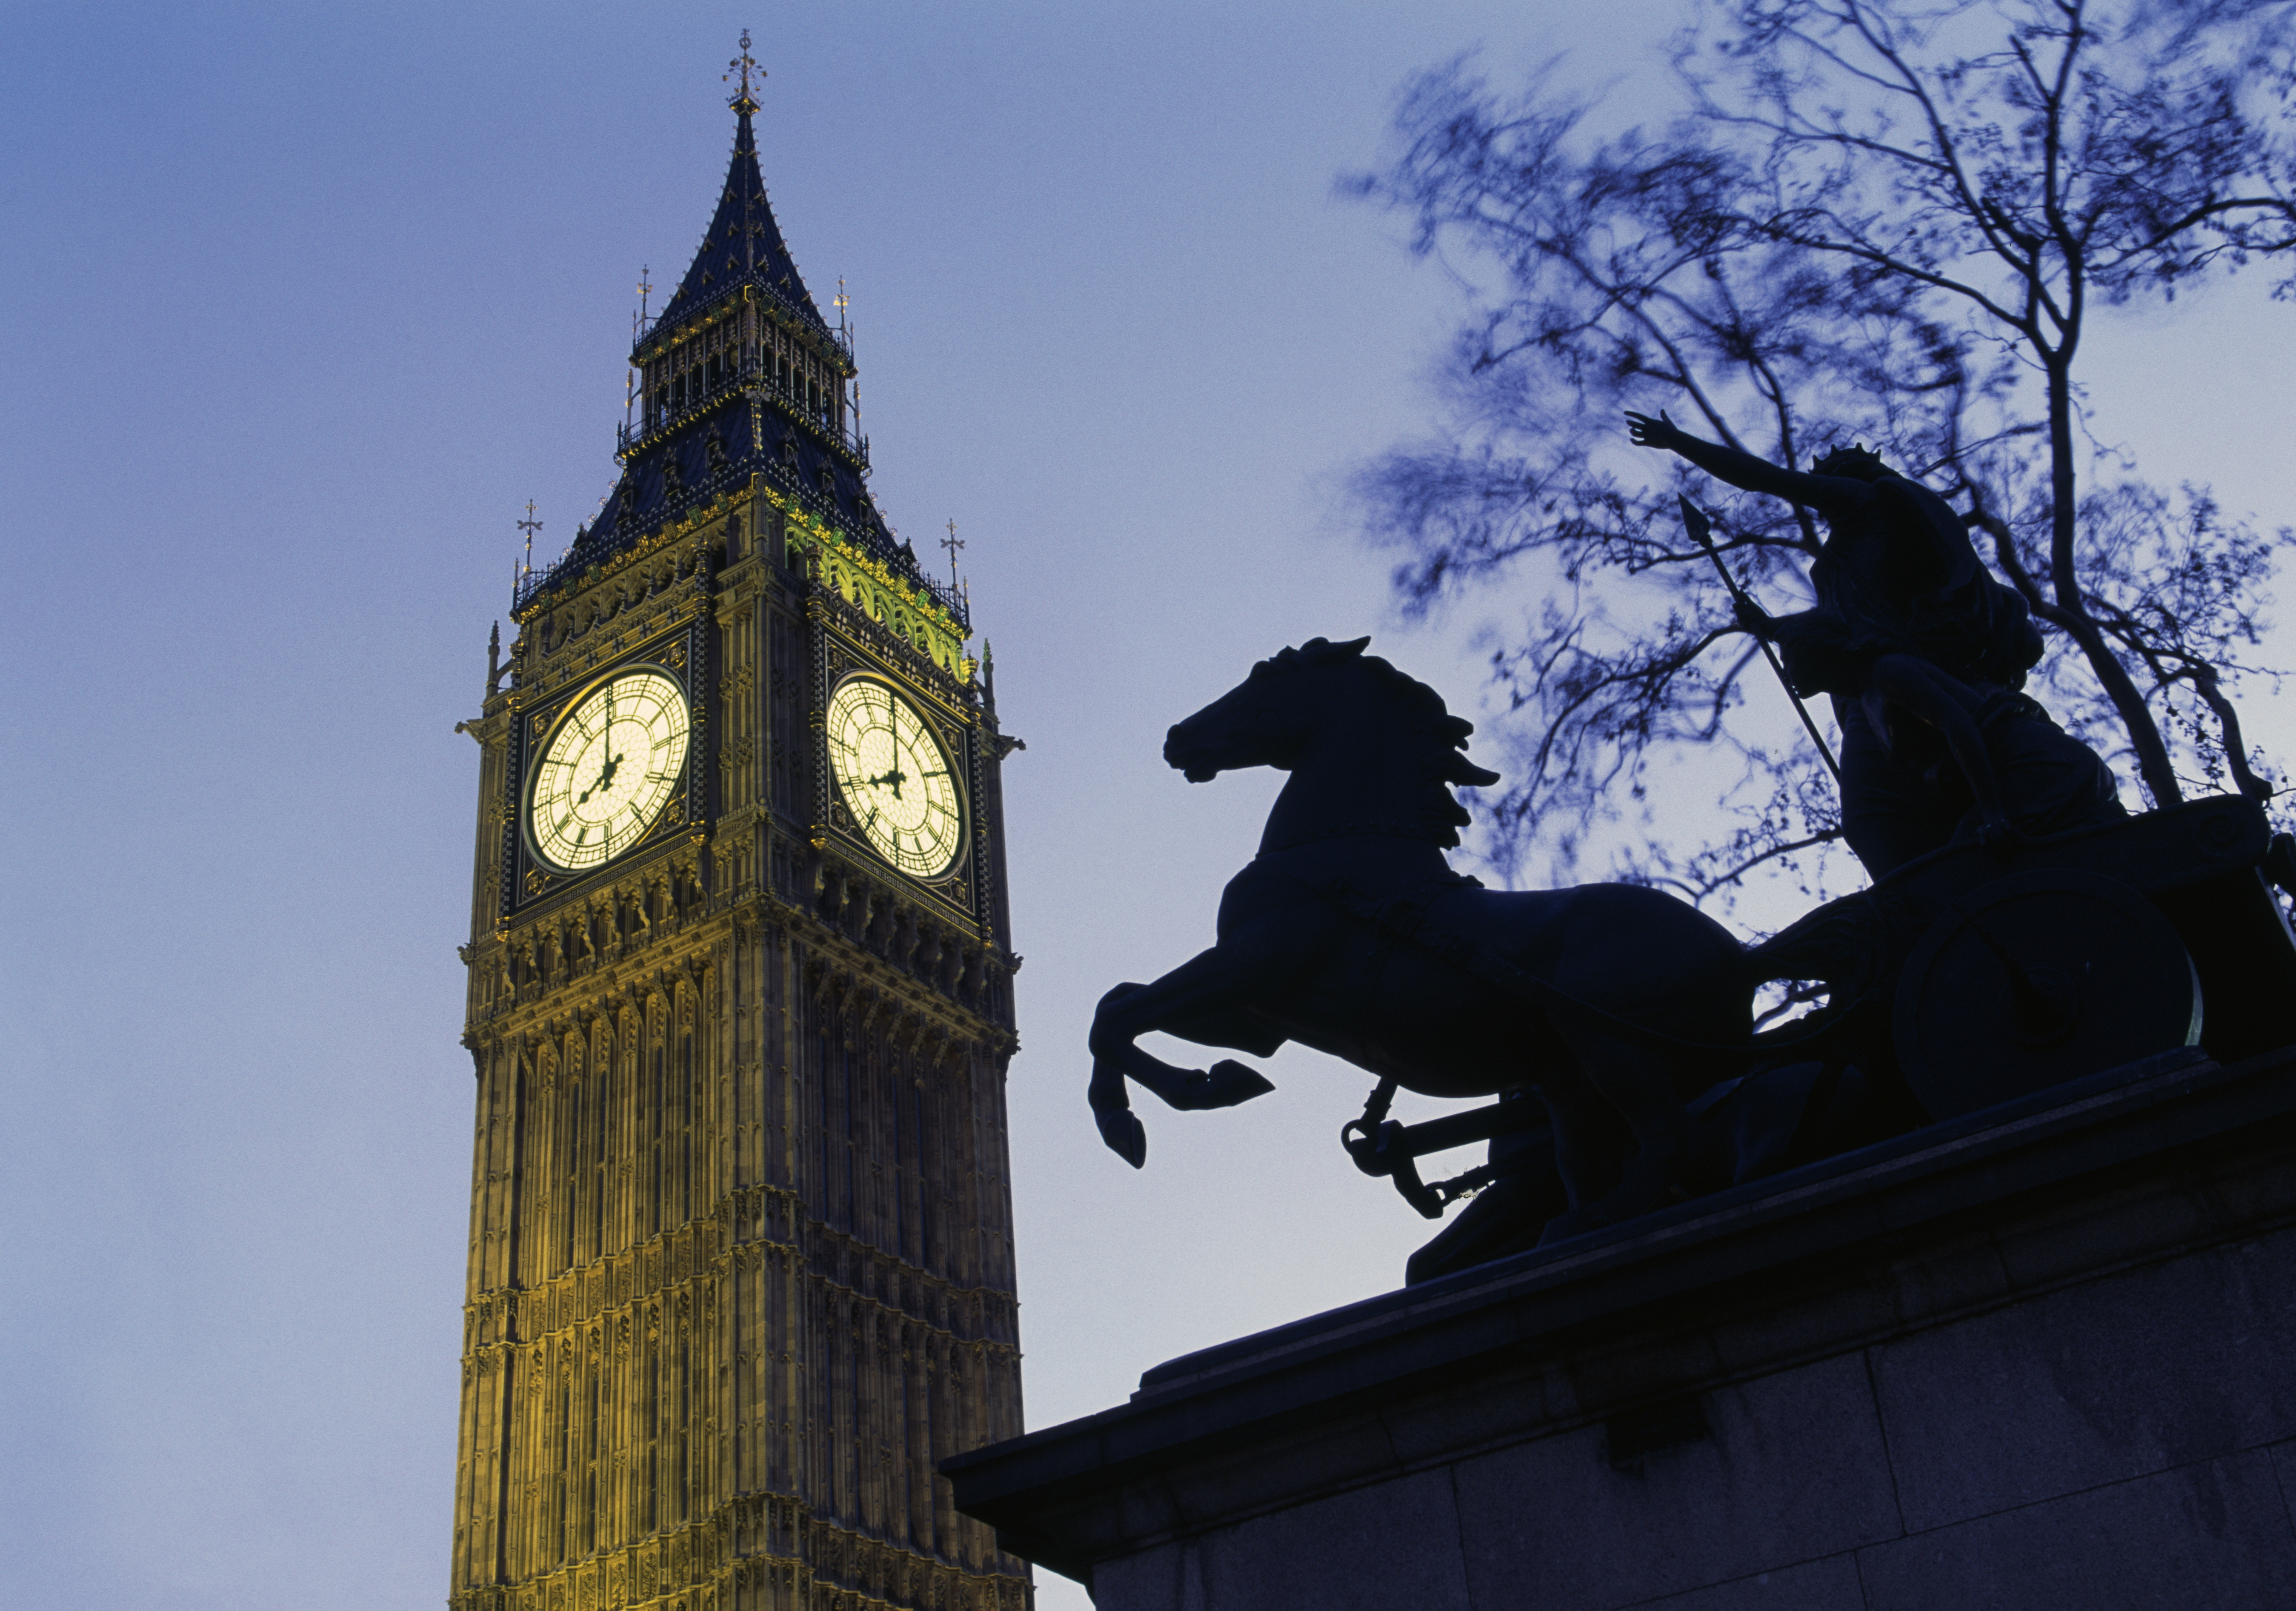 View of Big Ben in London, England